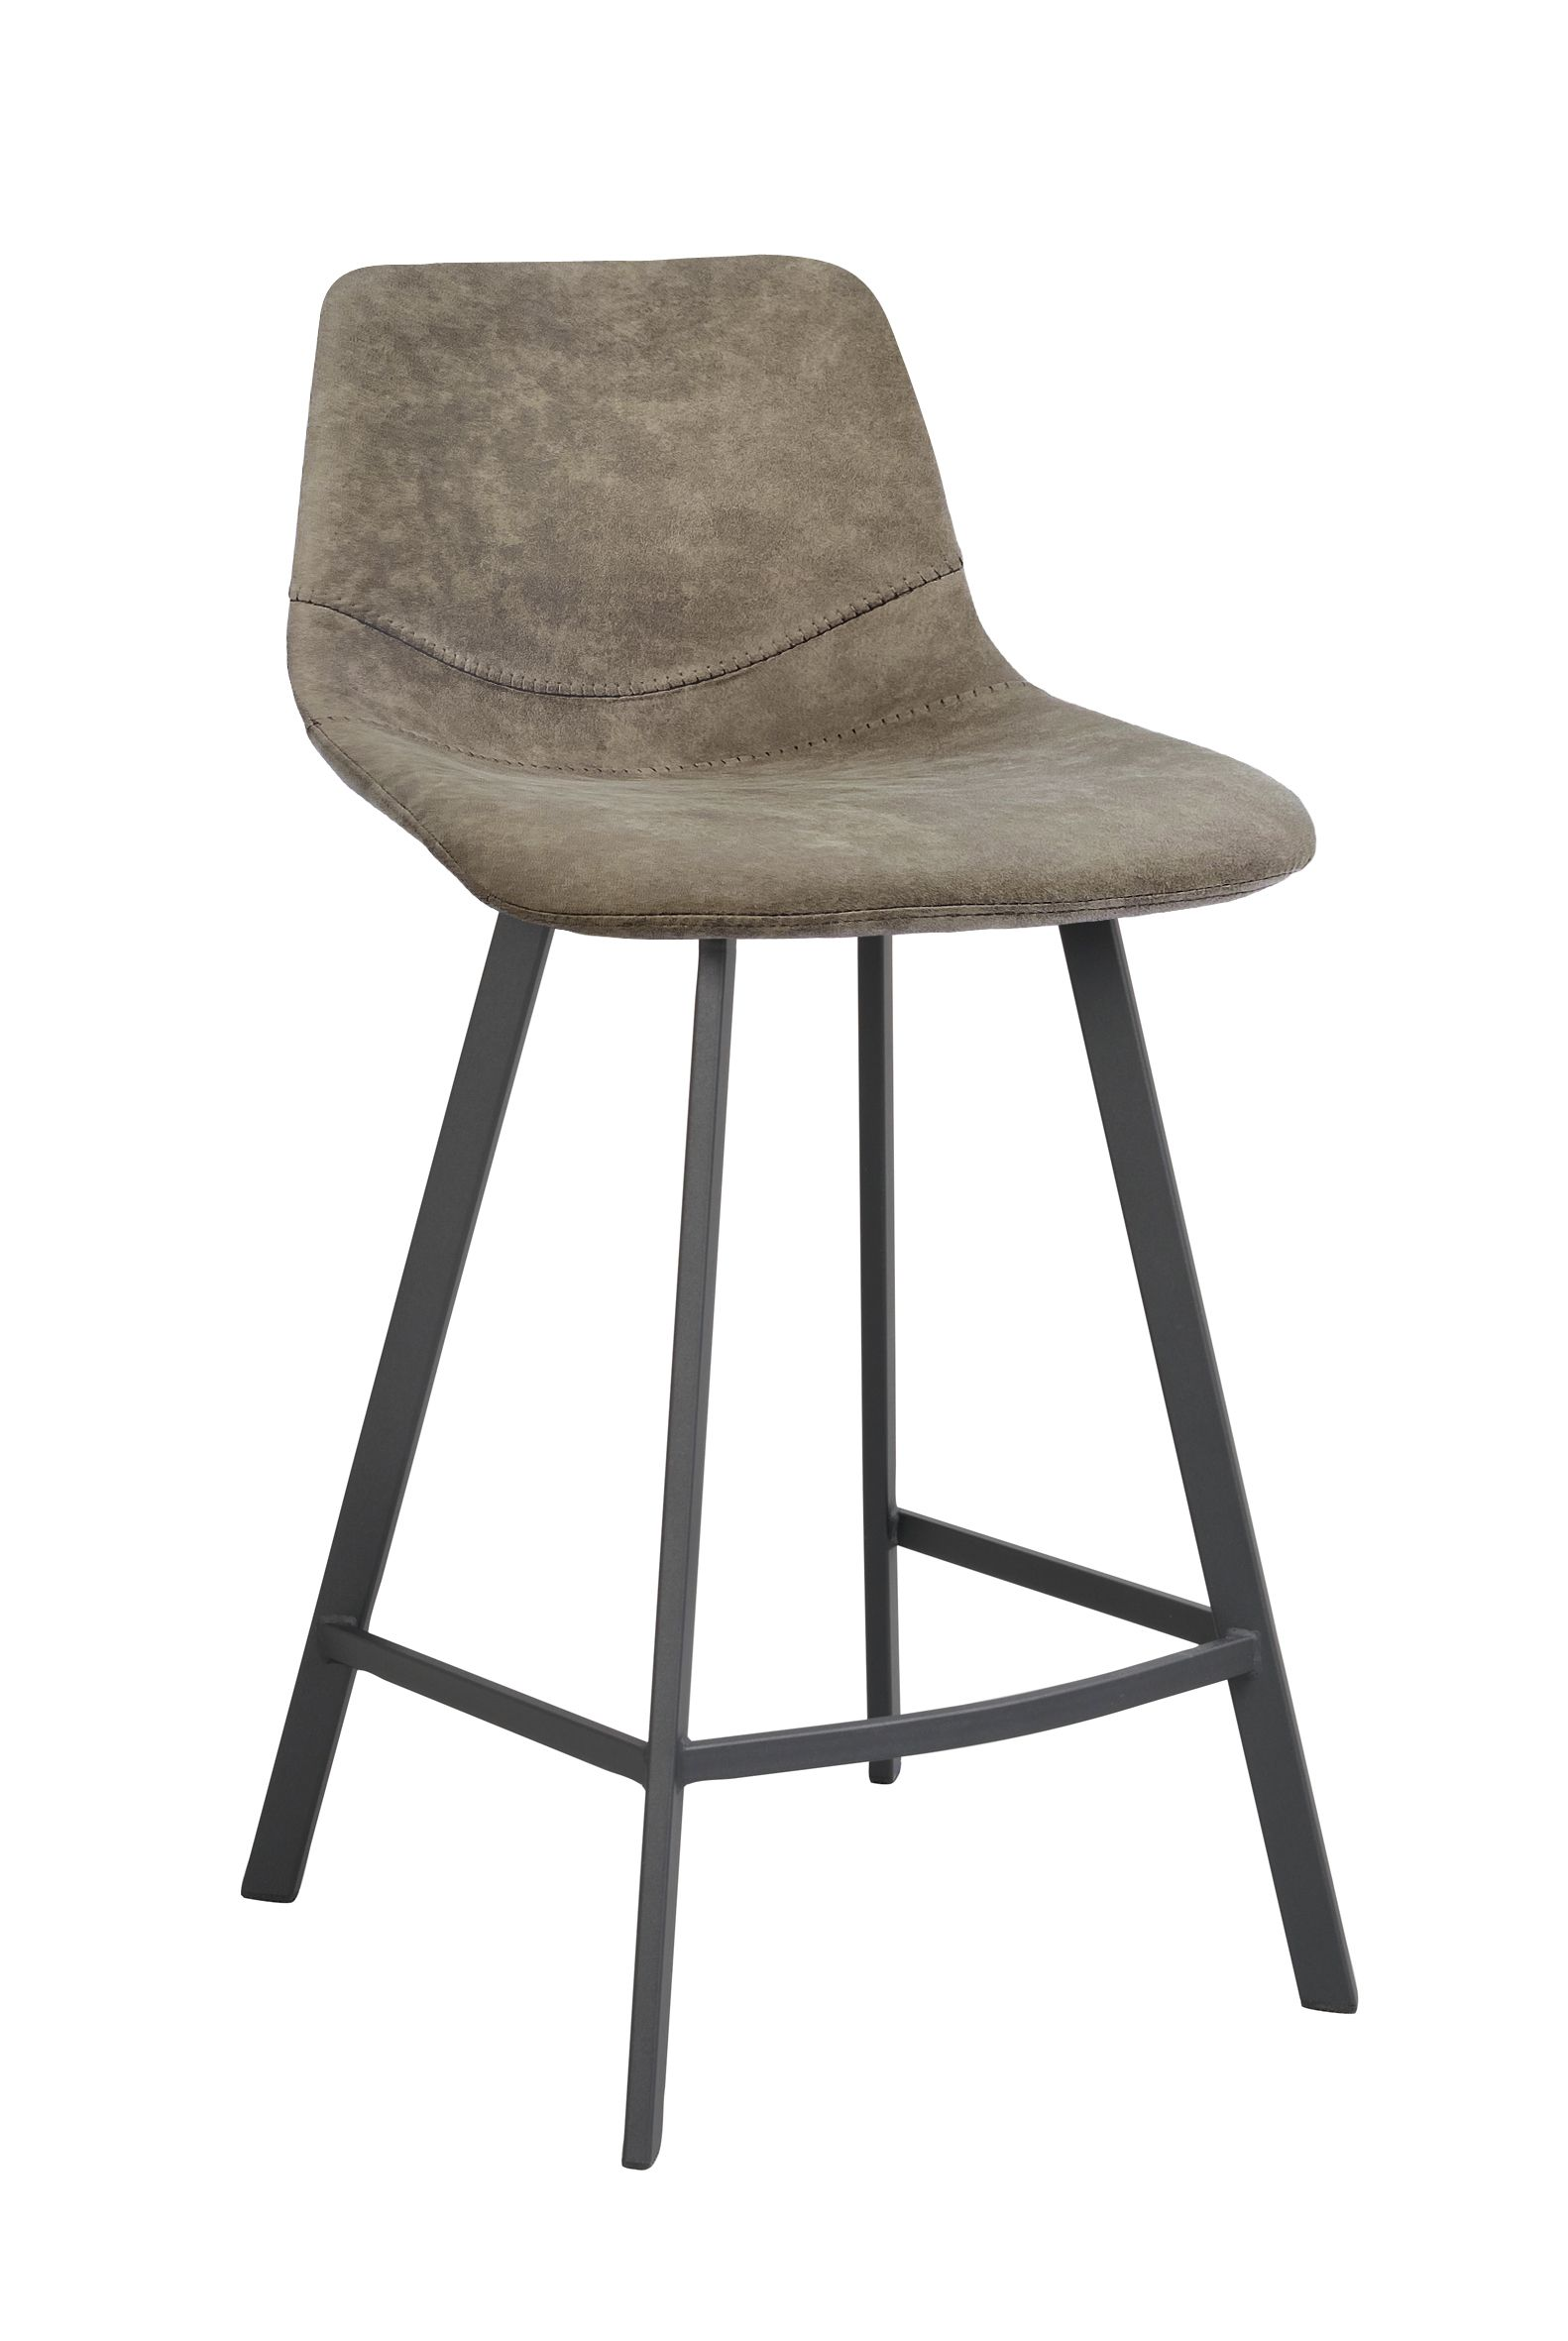 EDDISON AUBURN STOOL Putty PU Leather